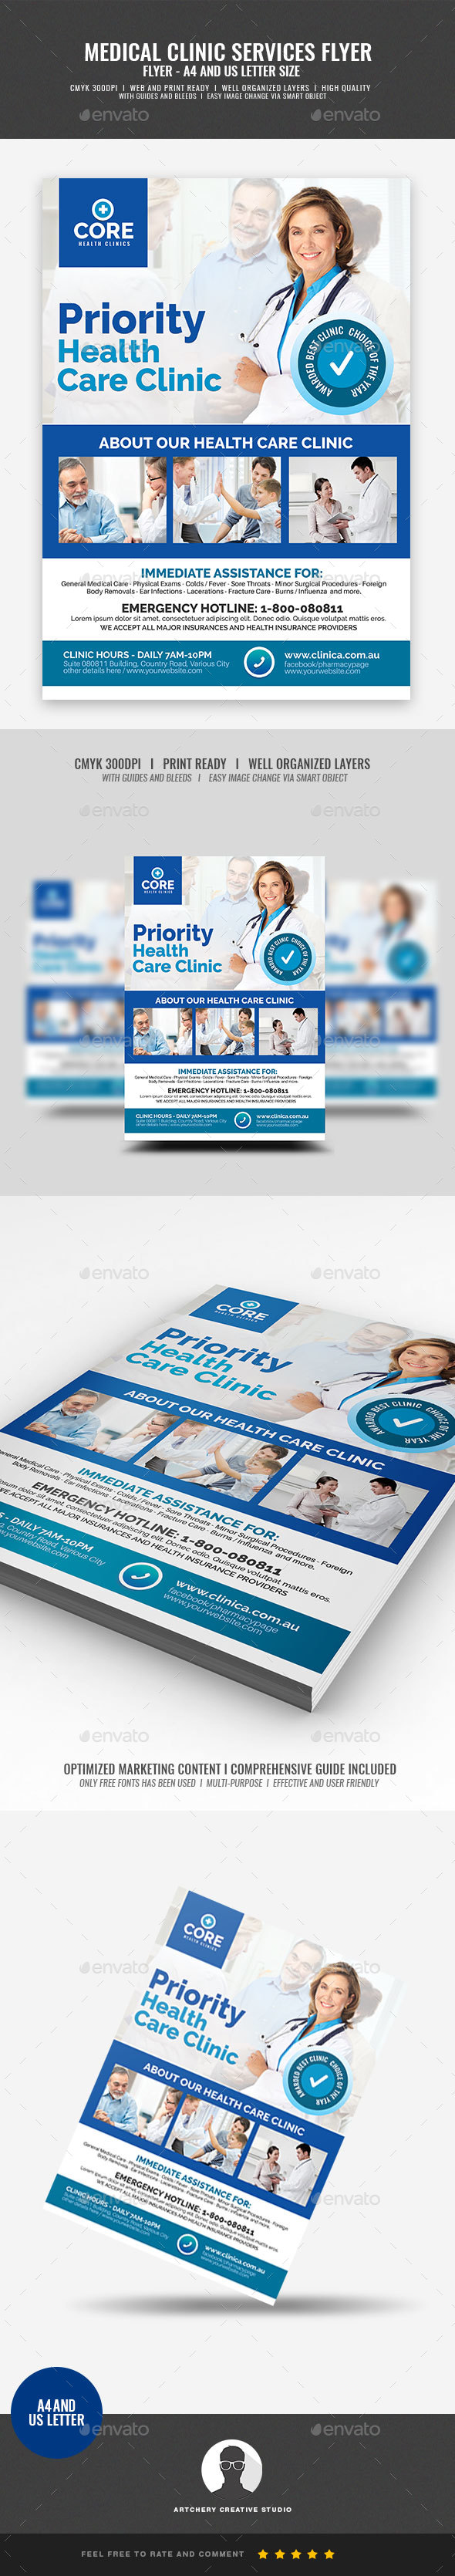 Medical Clinic Promotional Flyer - Corporate Flyers